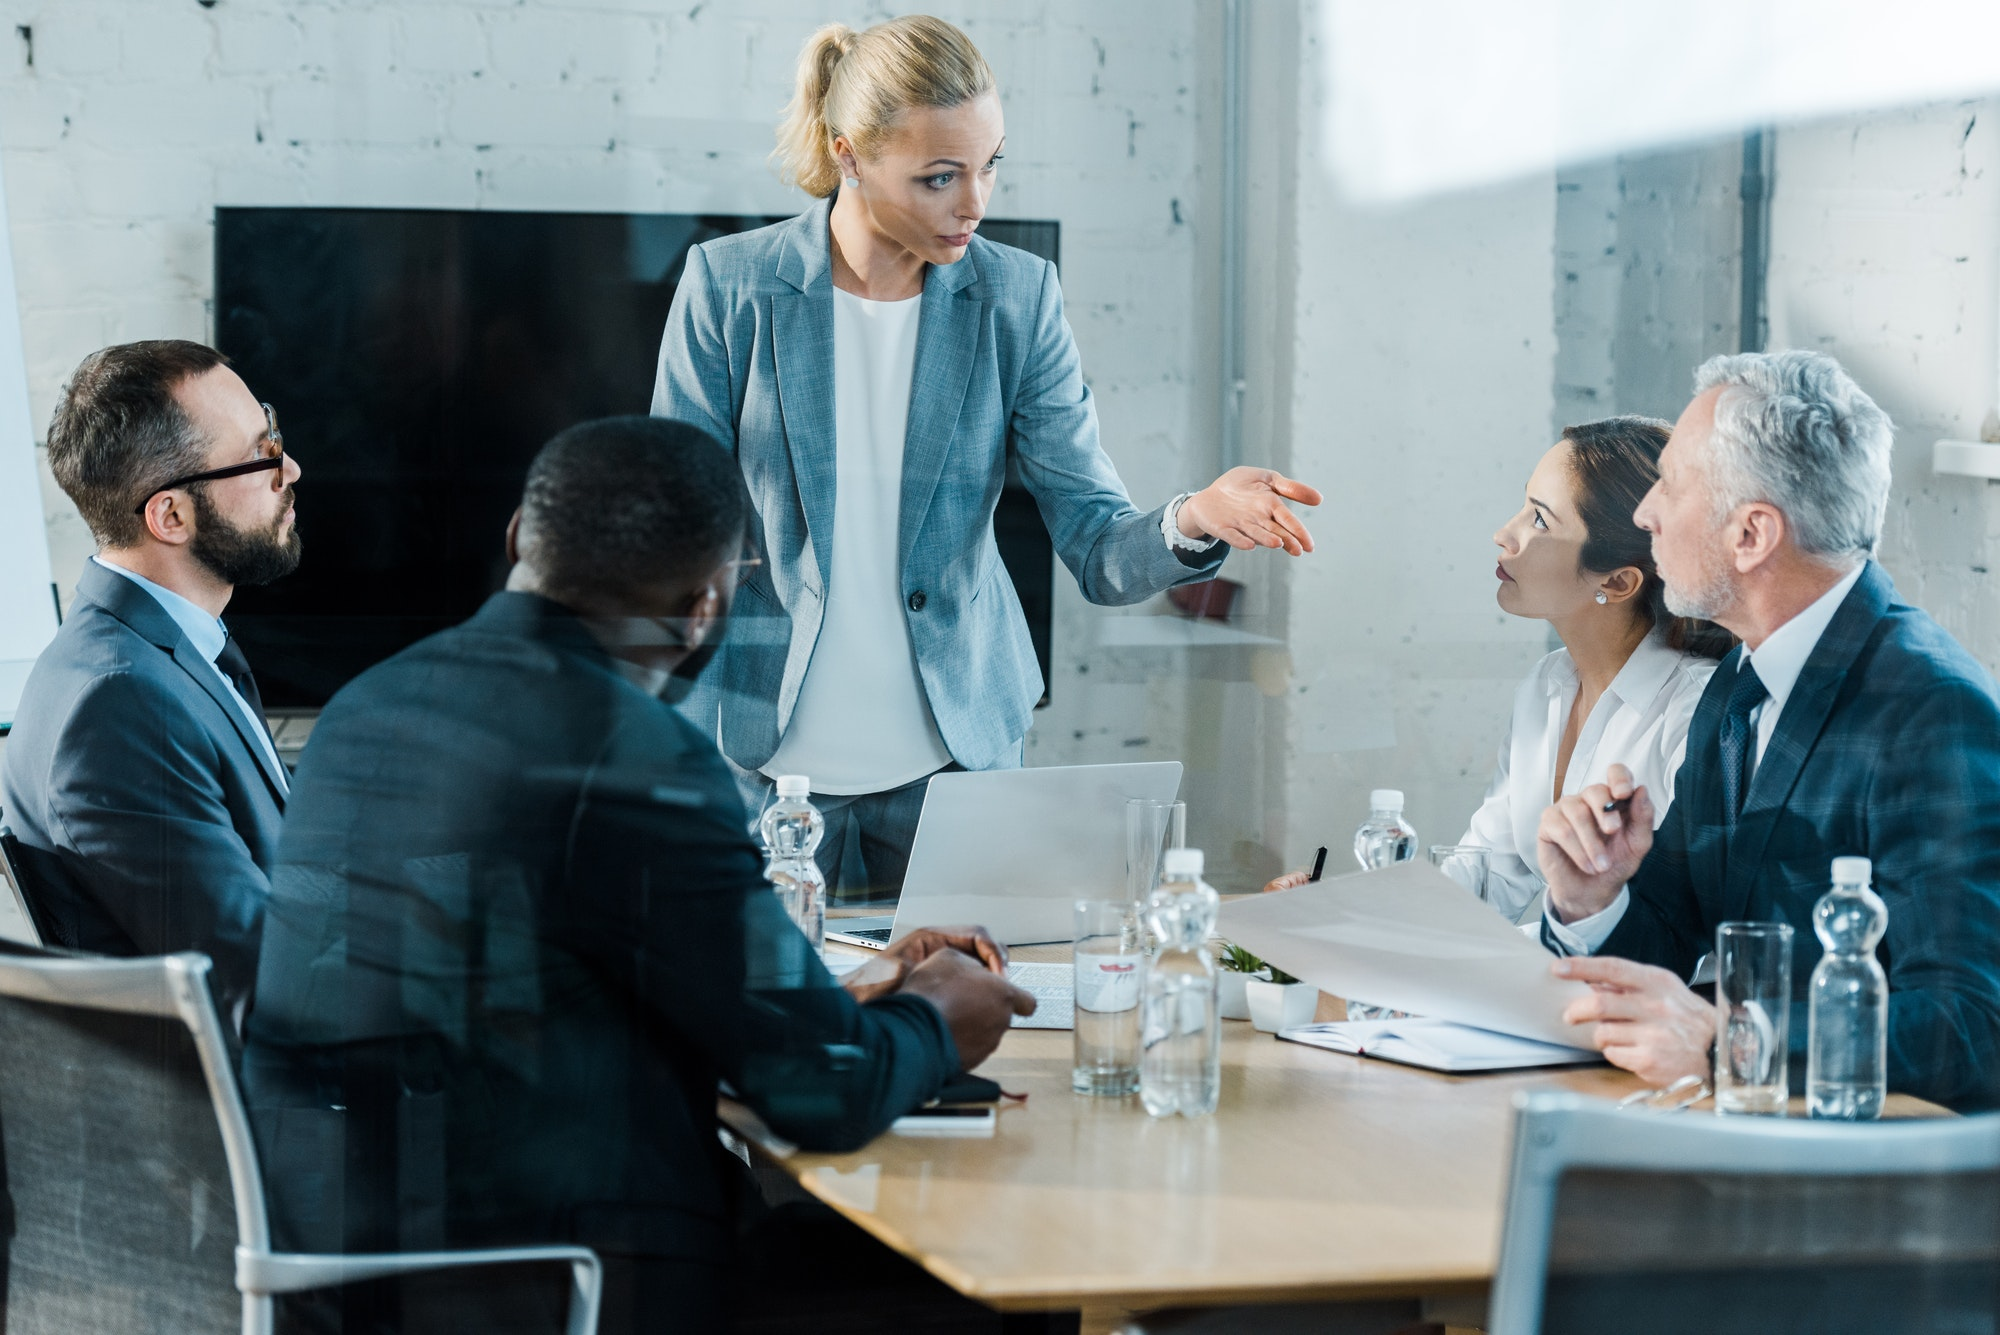 selective focus of business coach talking and gesturing in conference room near multicultural